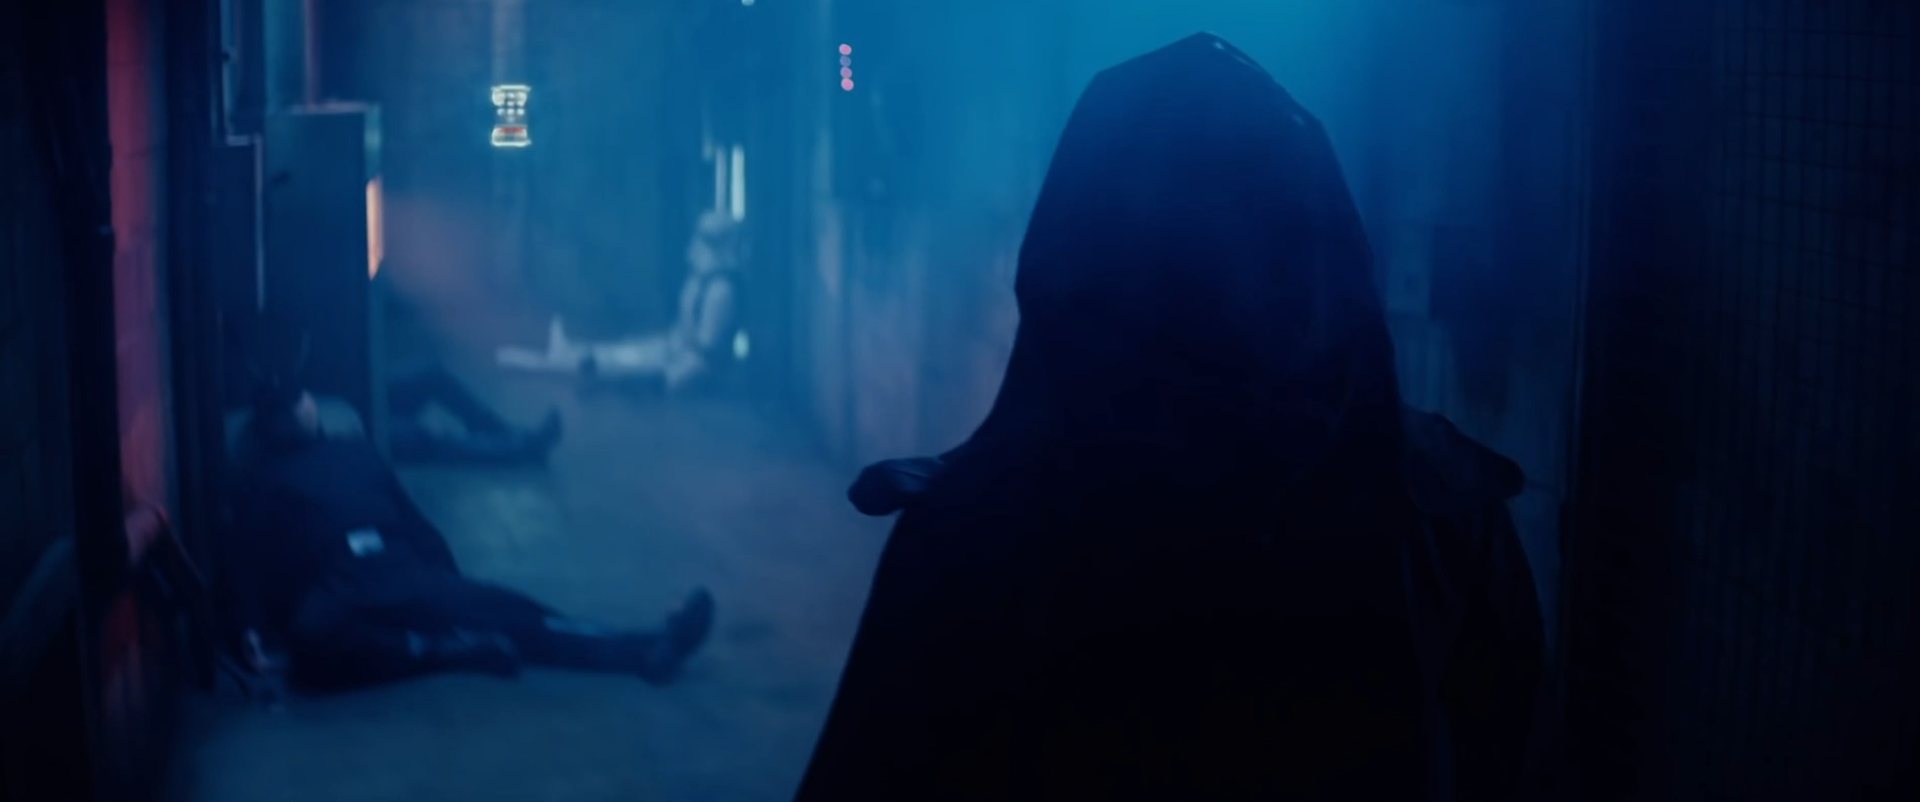 Star Wars on Netflix Trailer- Fury of Maul (April Fools')_No Bars (0-00-03-22).png